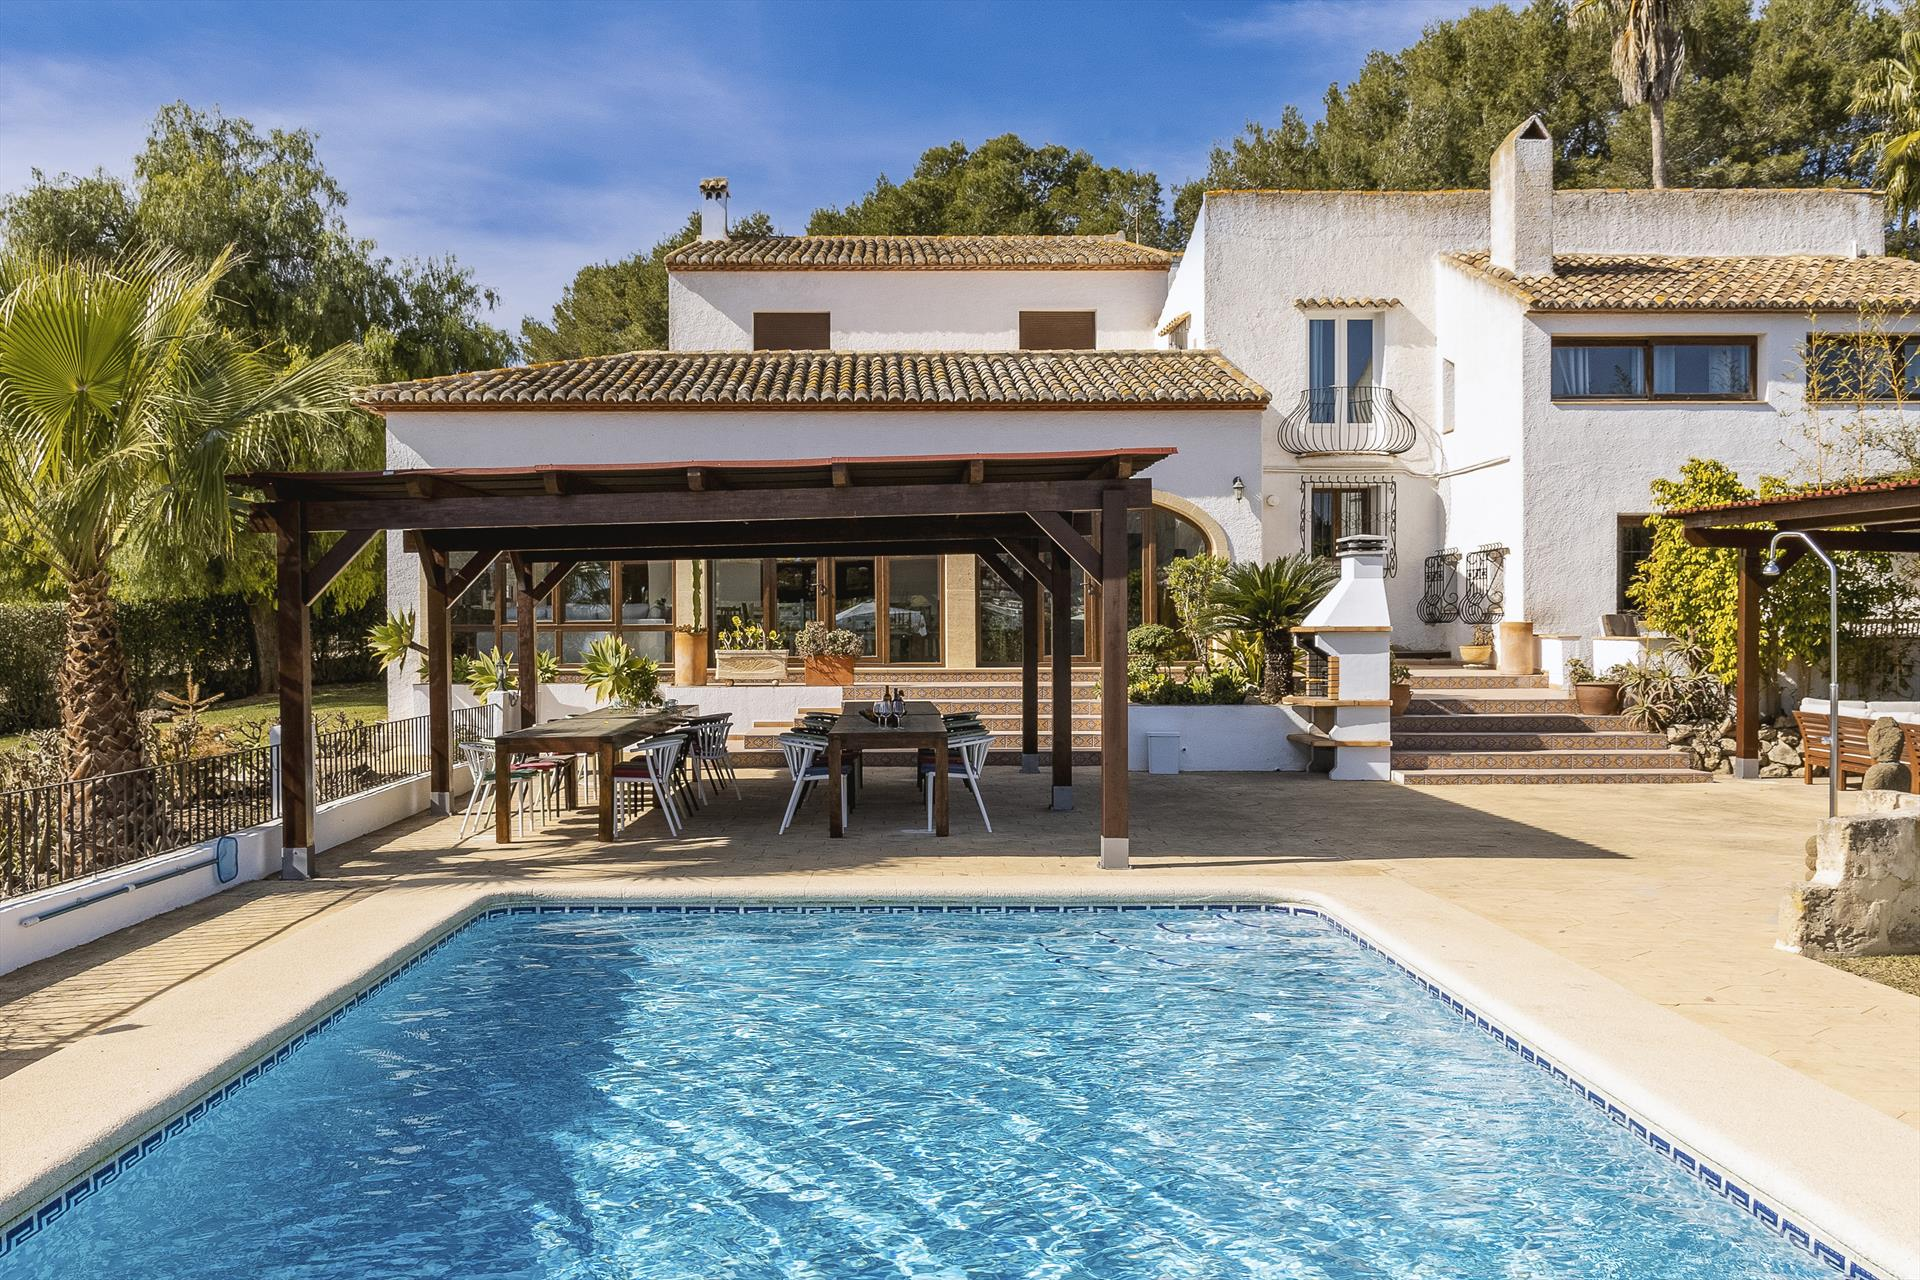 Casa Rosalia 16 pax, Wonderful and classic villa in Javea, on the Costa Blanca, Spain  with private pool for 16 persons.....